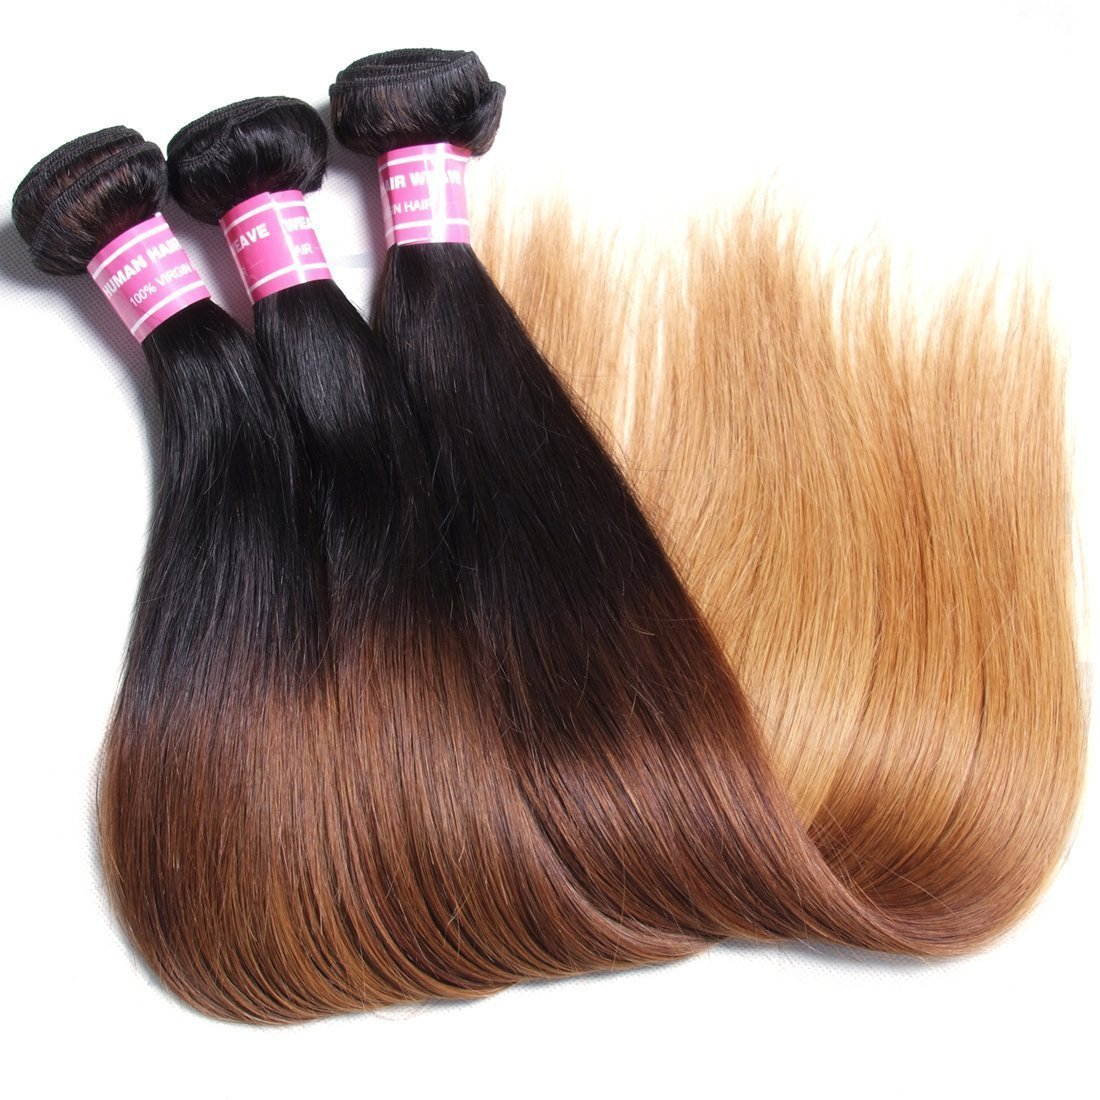 Beauty Forever Hair Malaysian Ombre Straight Virgin Hair 3 Bundles Grade 6A 100% Virgin Human Hair Weave Extensions 3 Tone #1b/4/27 Color (16 18 20)